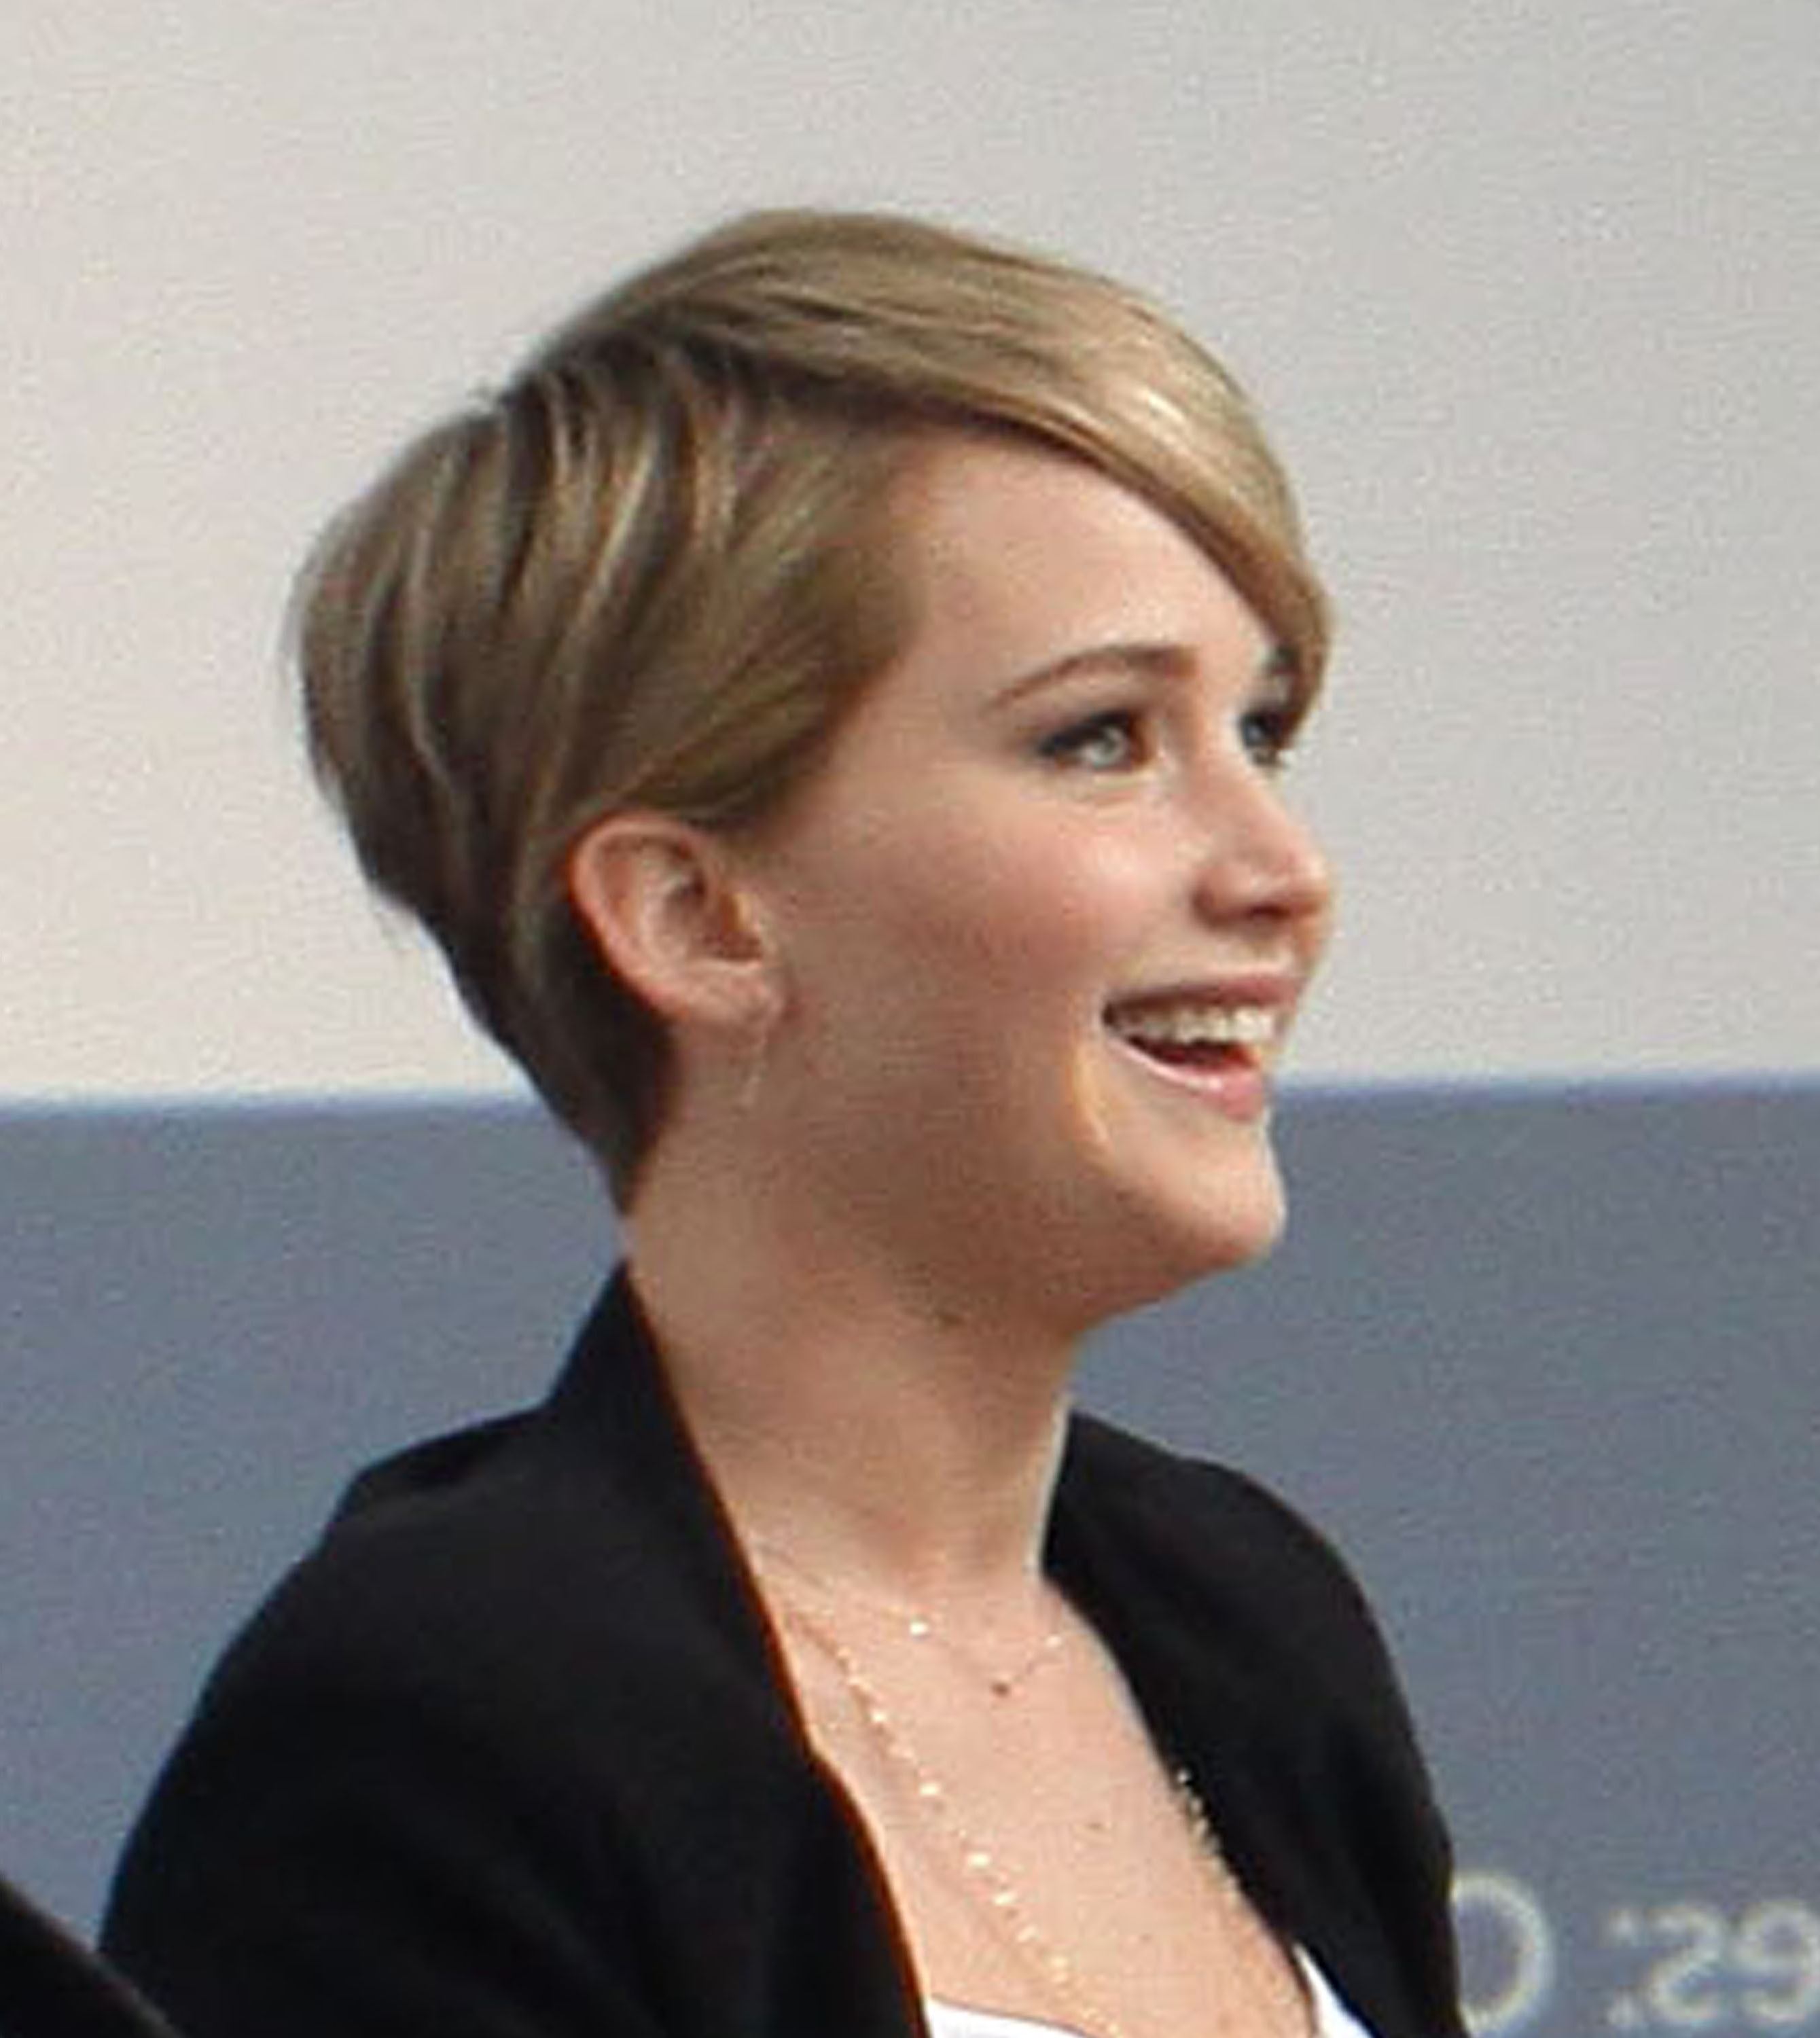 Jennifer Lawrence Shows Off Her Short Hair At Yahoo! Q&a - Jennifer intended for Jennifer Lawrence Short Haircuts